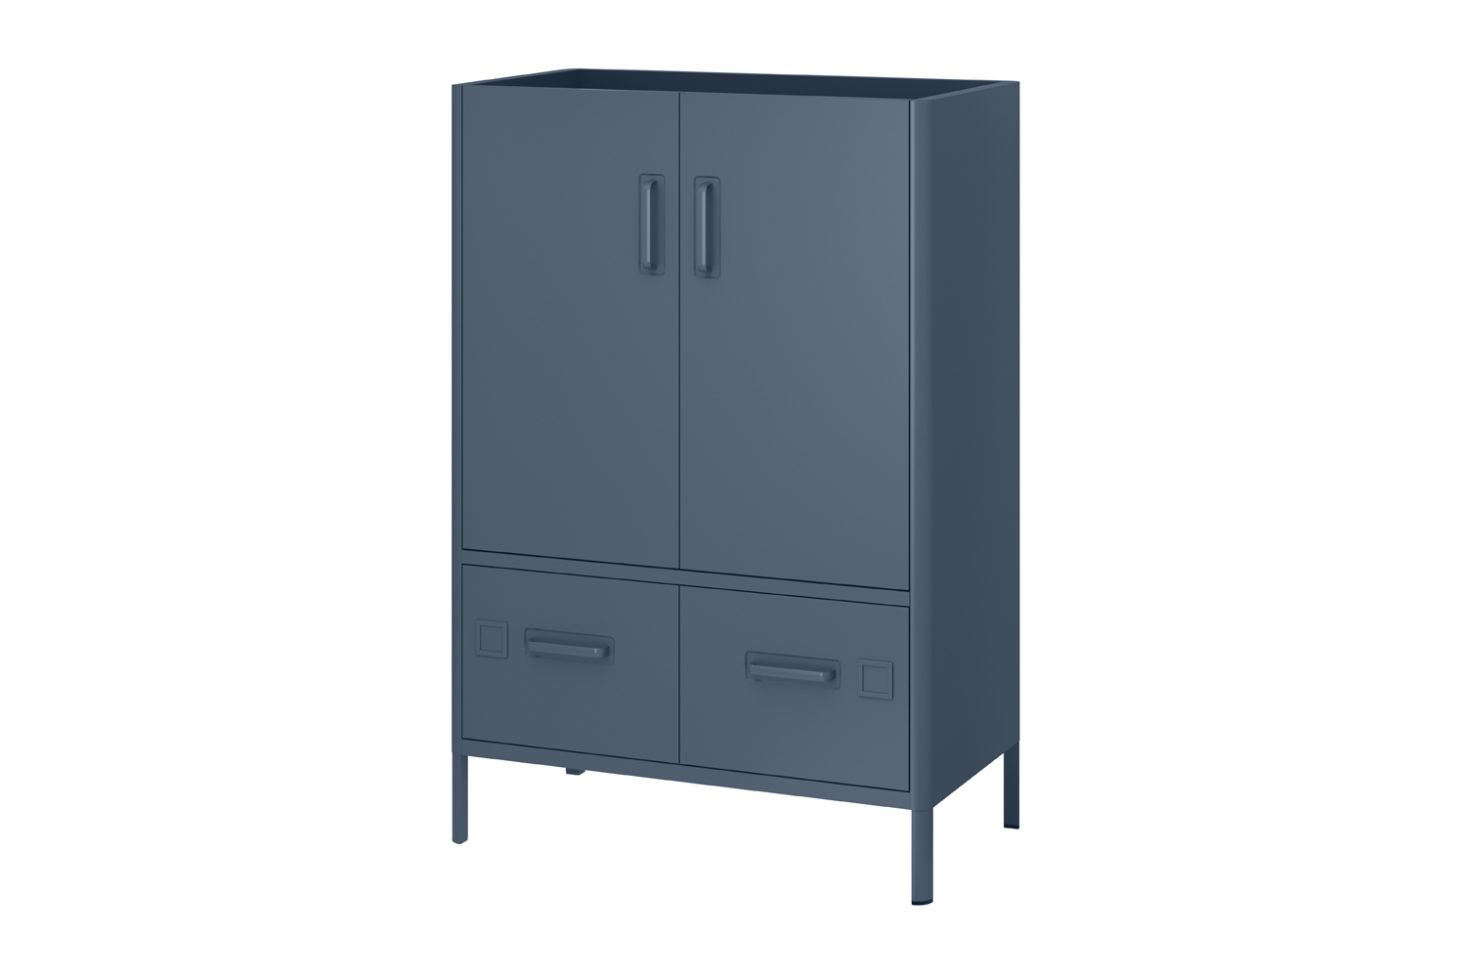 New Noteworthy Introducing Idasen Ikea S New Storage Series